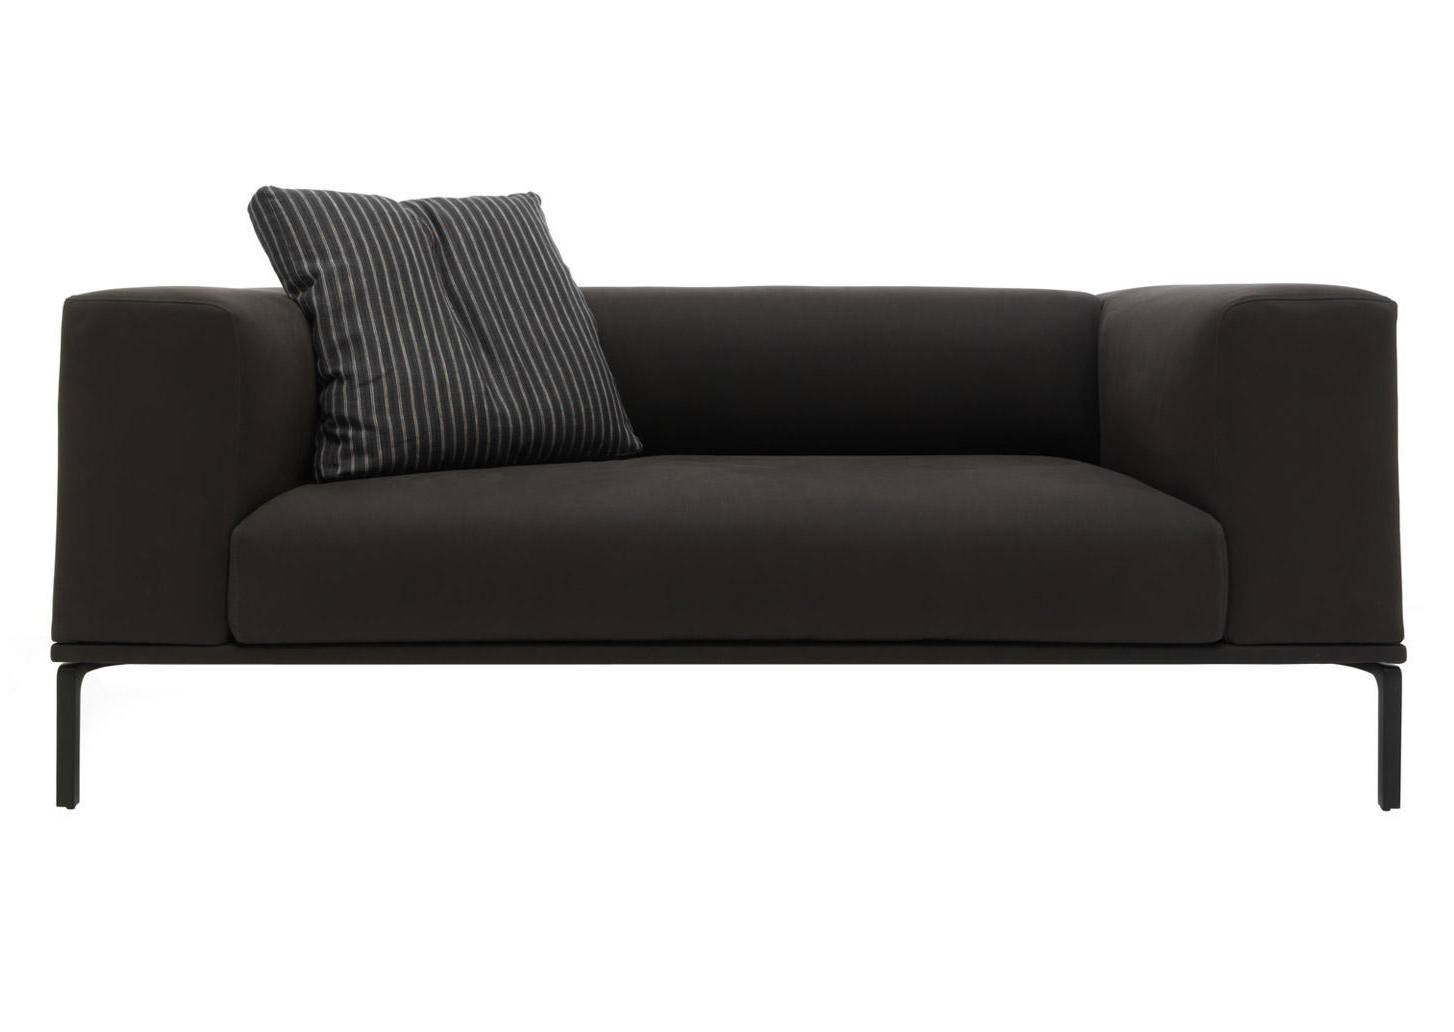 Sofa Helpdesk Cassina Moov Sofa Deplain